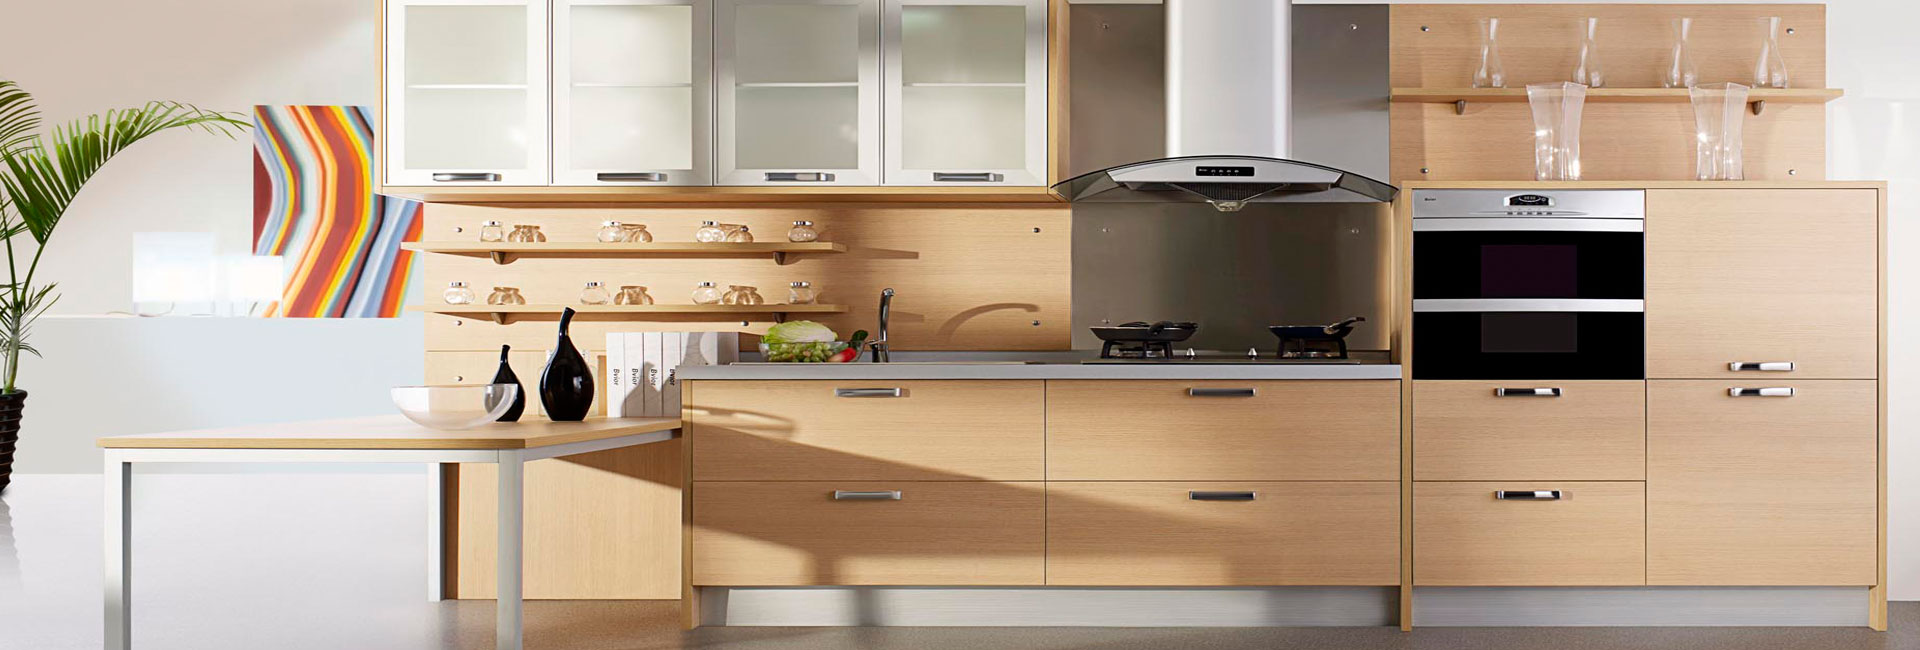 timbercirty-kitchen-cupboards-2